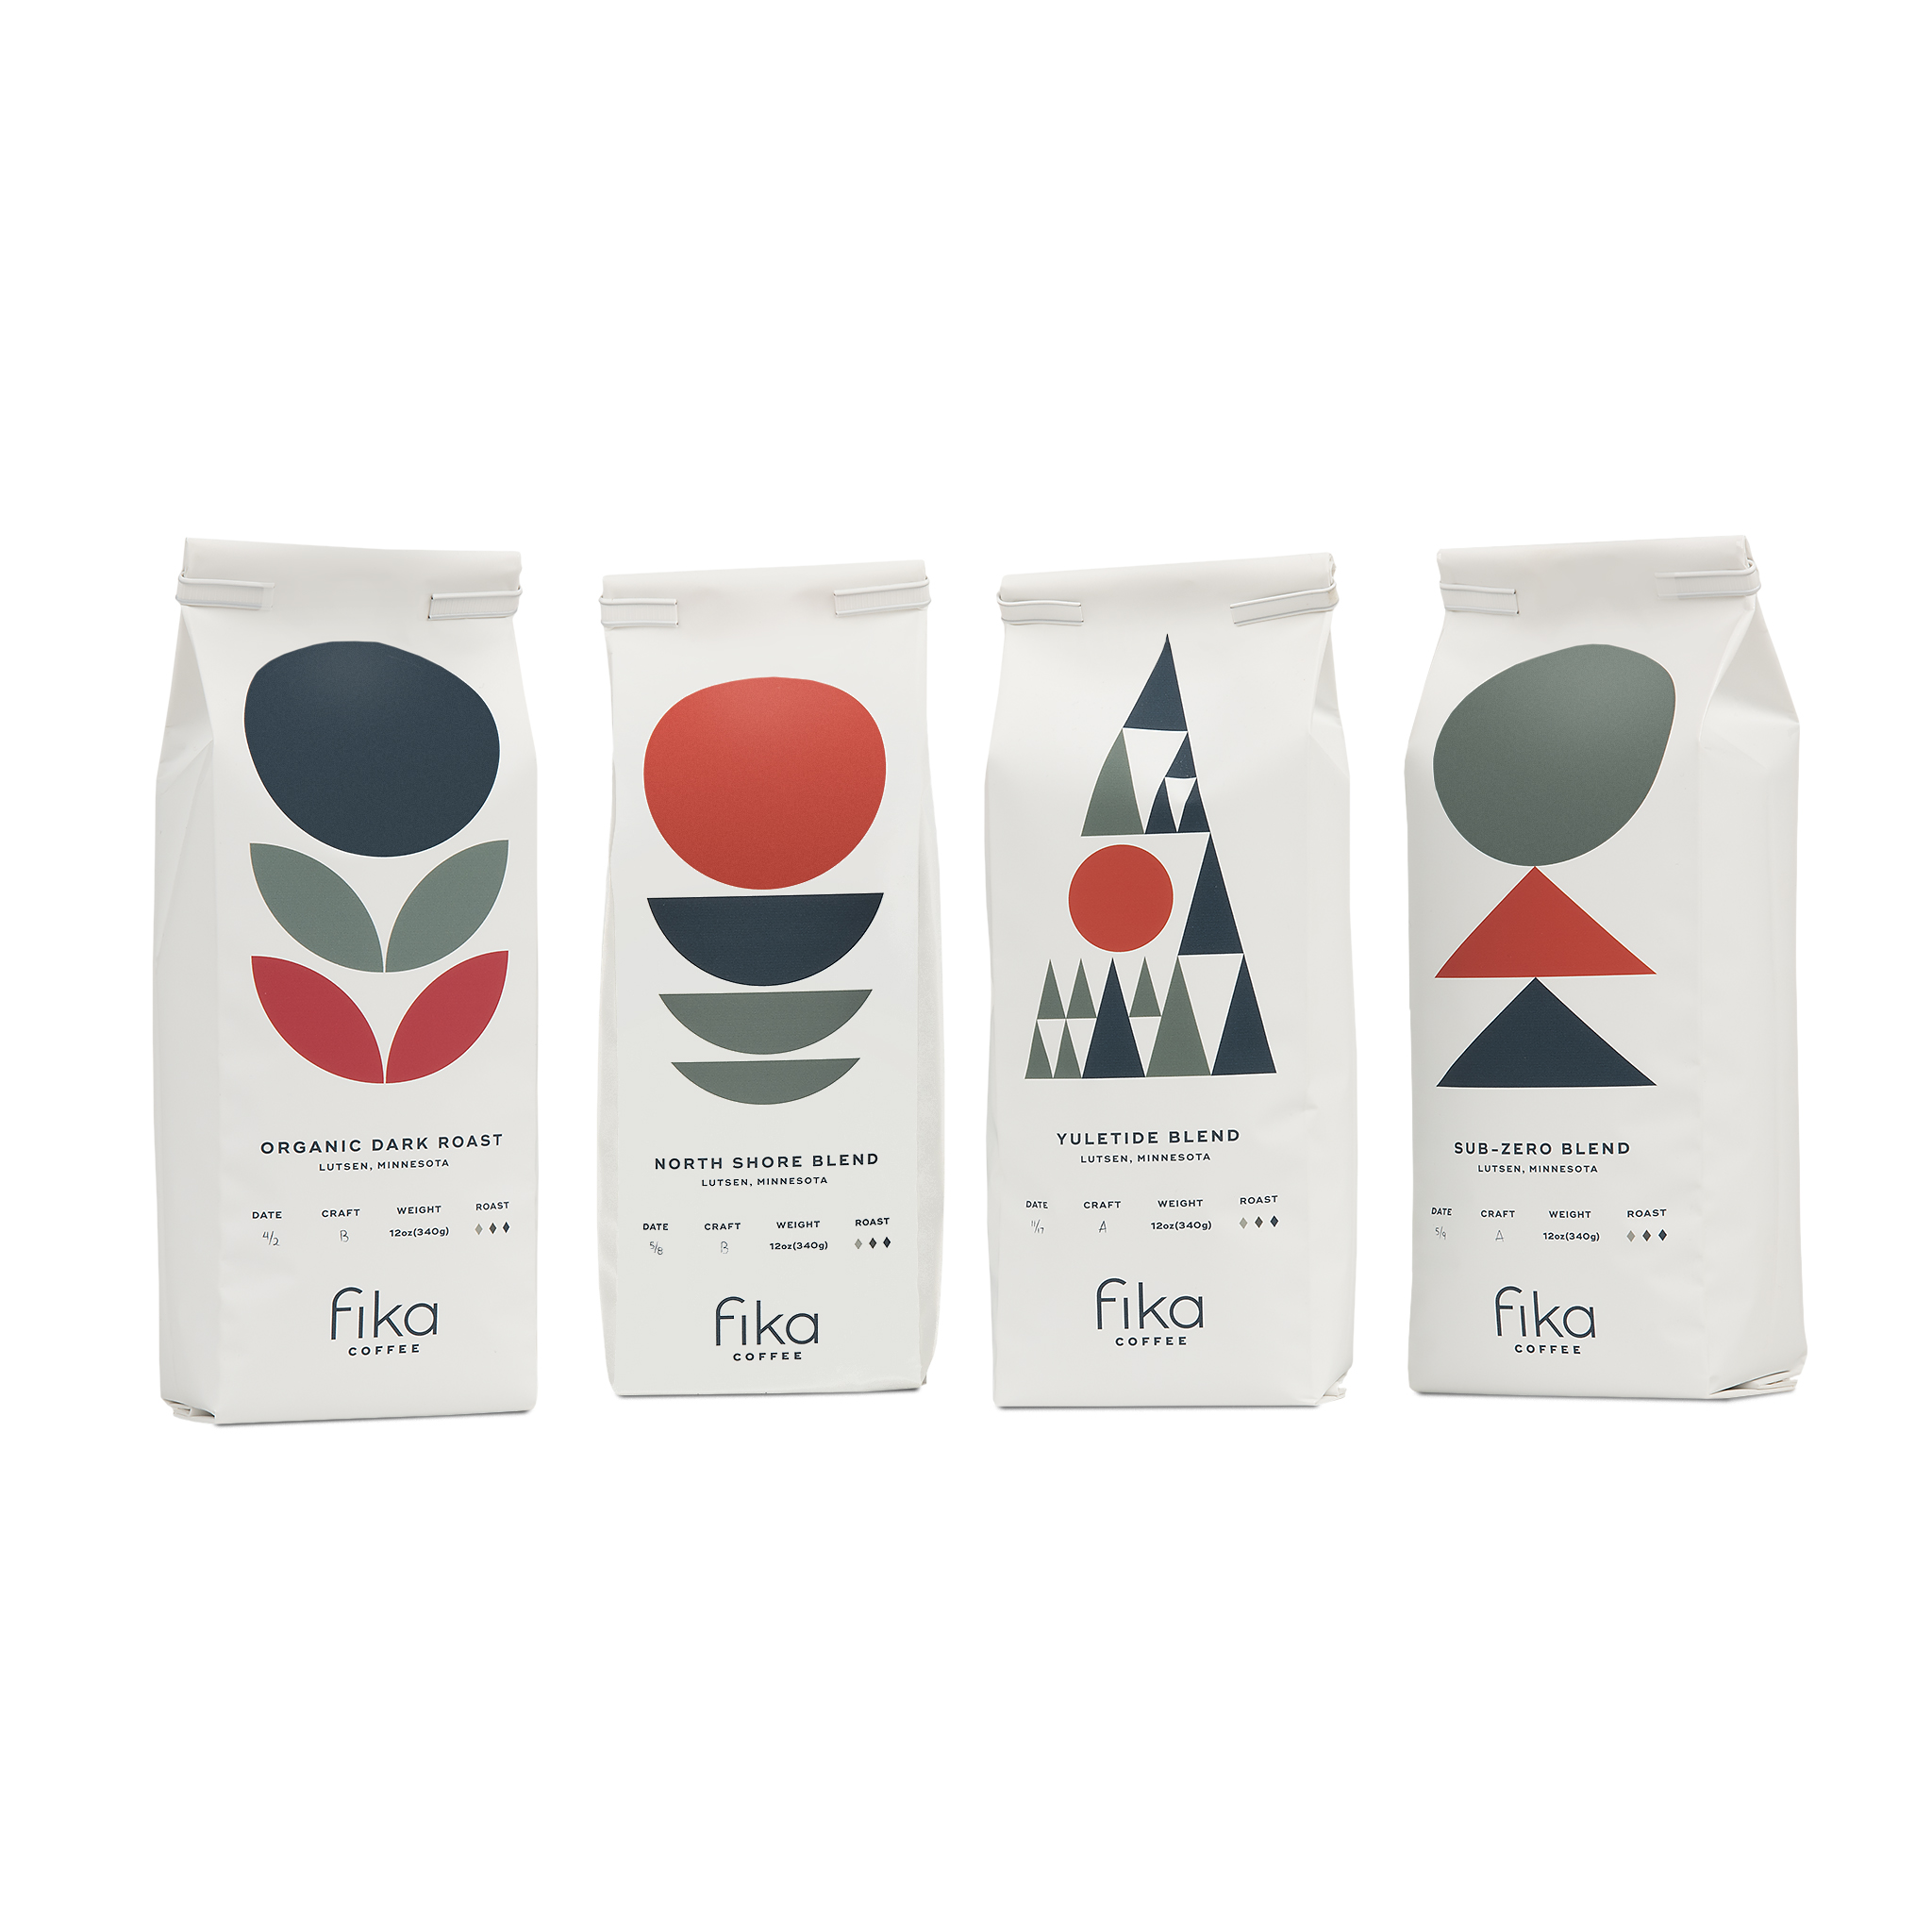 Group shot of 4 Fika brand coffee bags